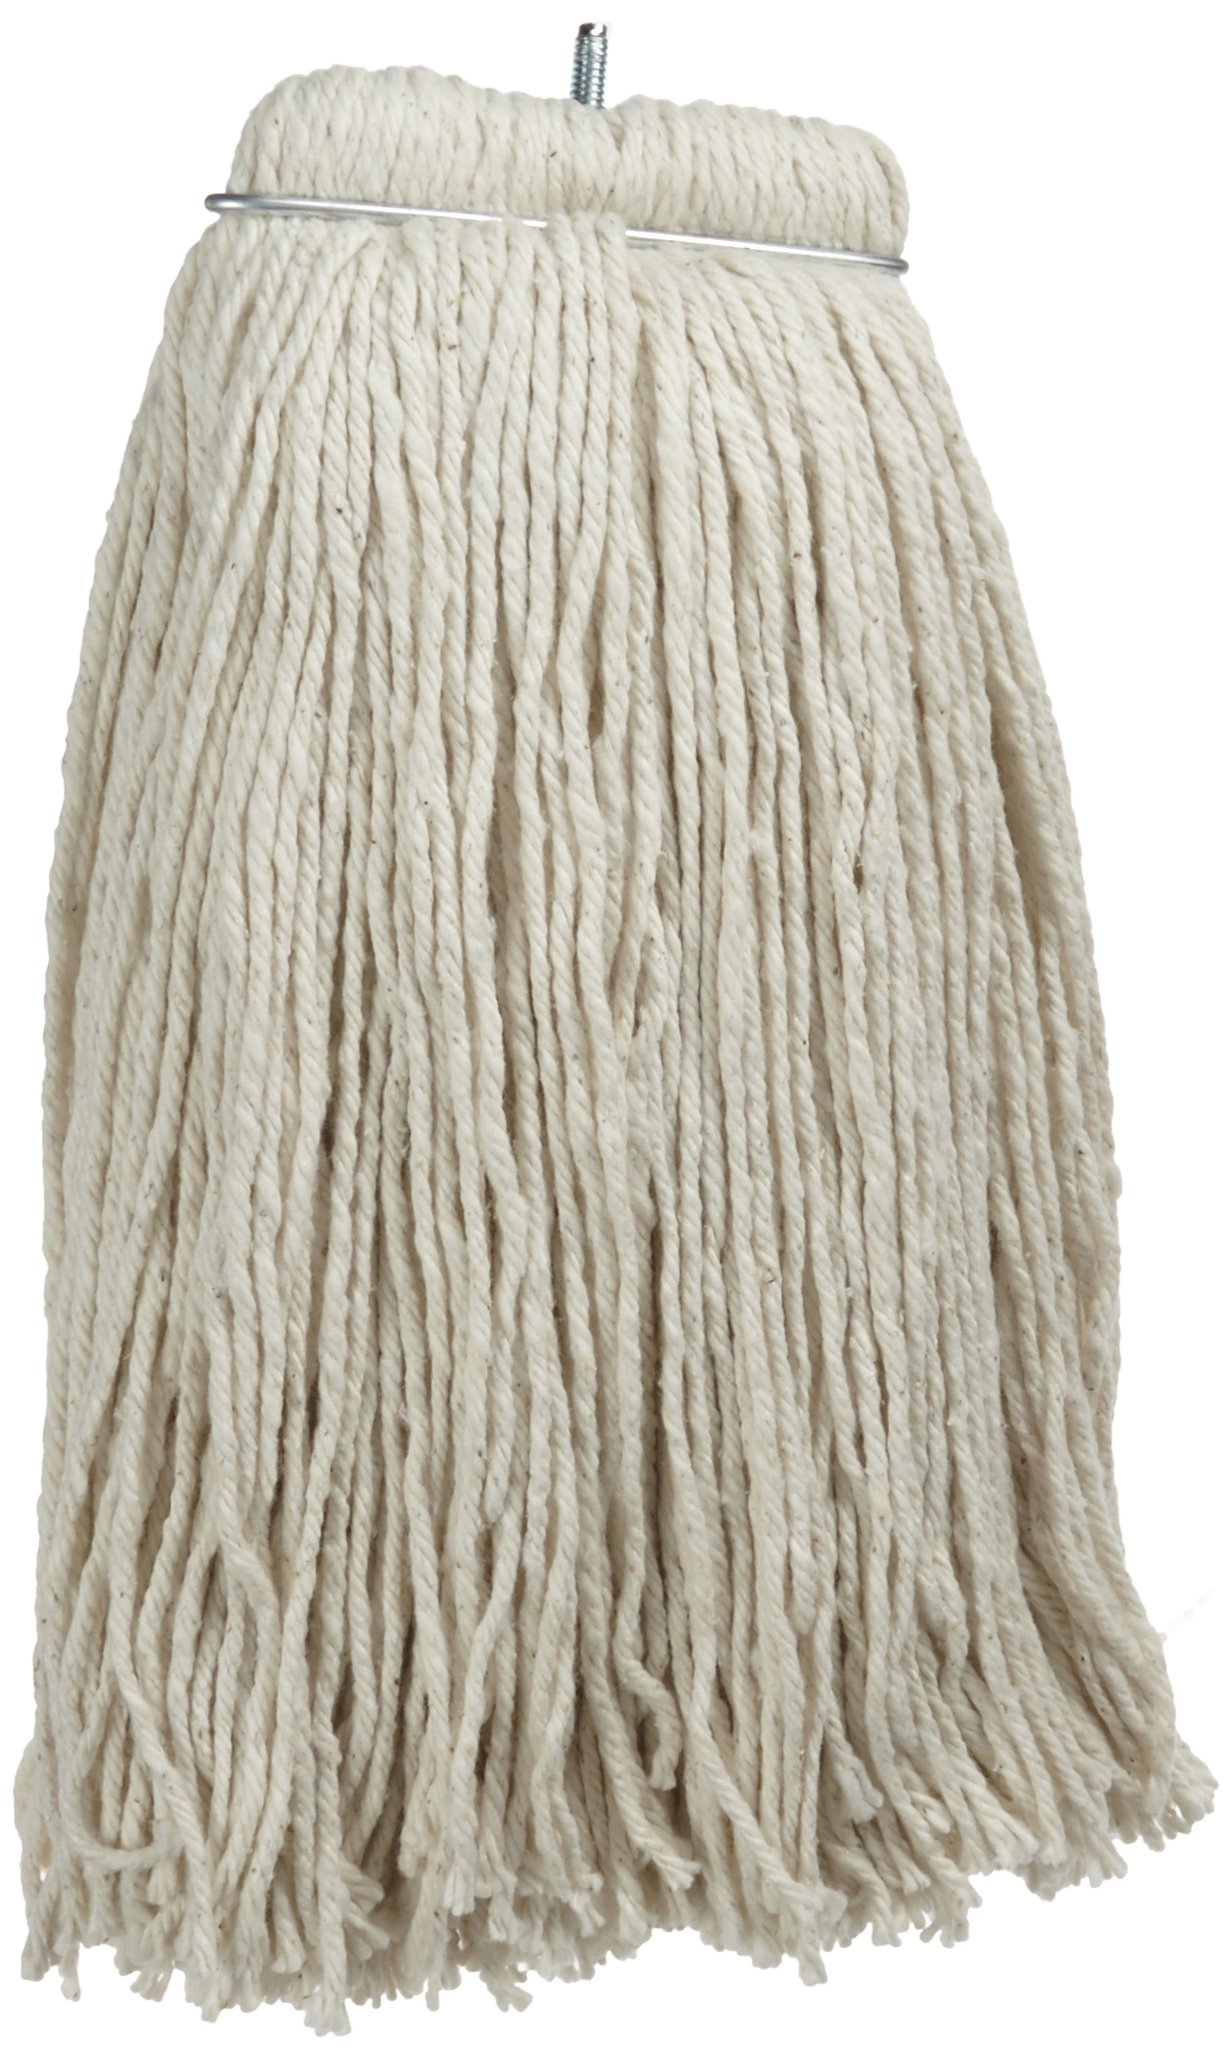 Impact 61200 Layflat Screw-Type Regular Cut-End Blend Wet Mop Head, 20 oz, White (Case of 12) by Impact Products